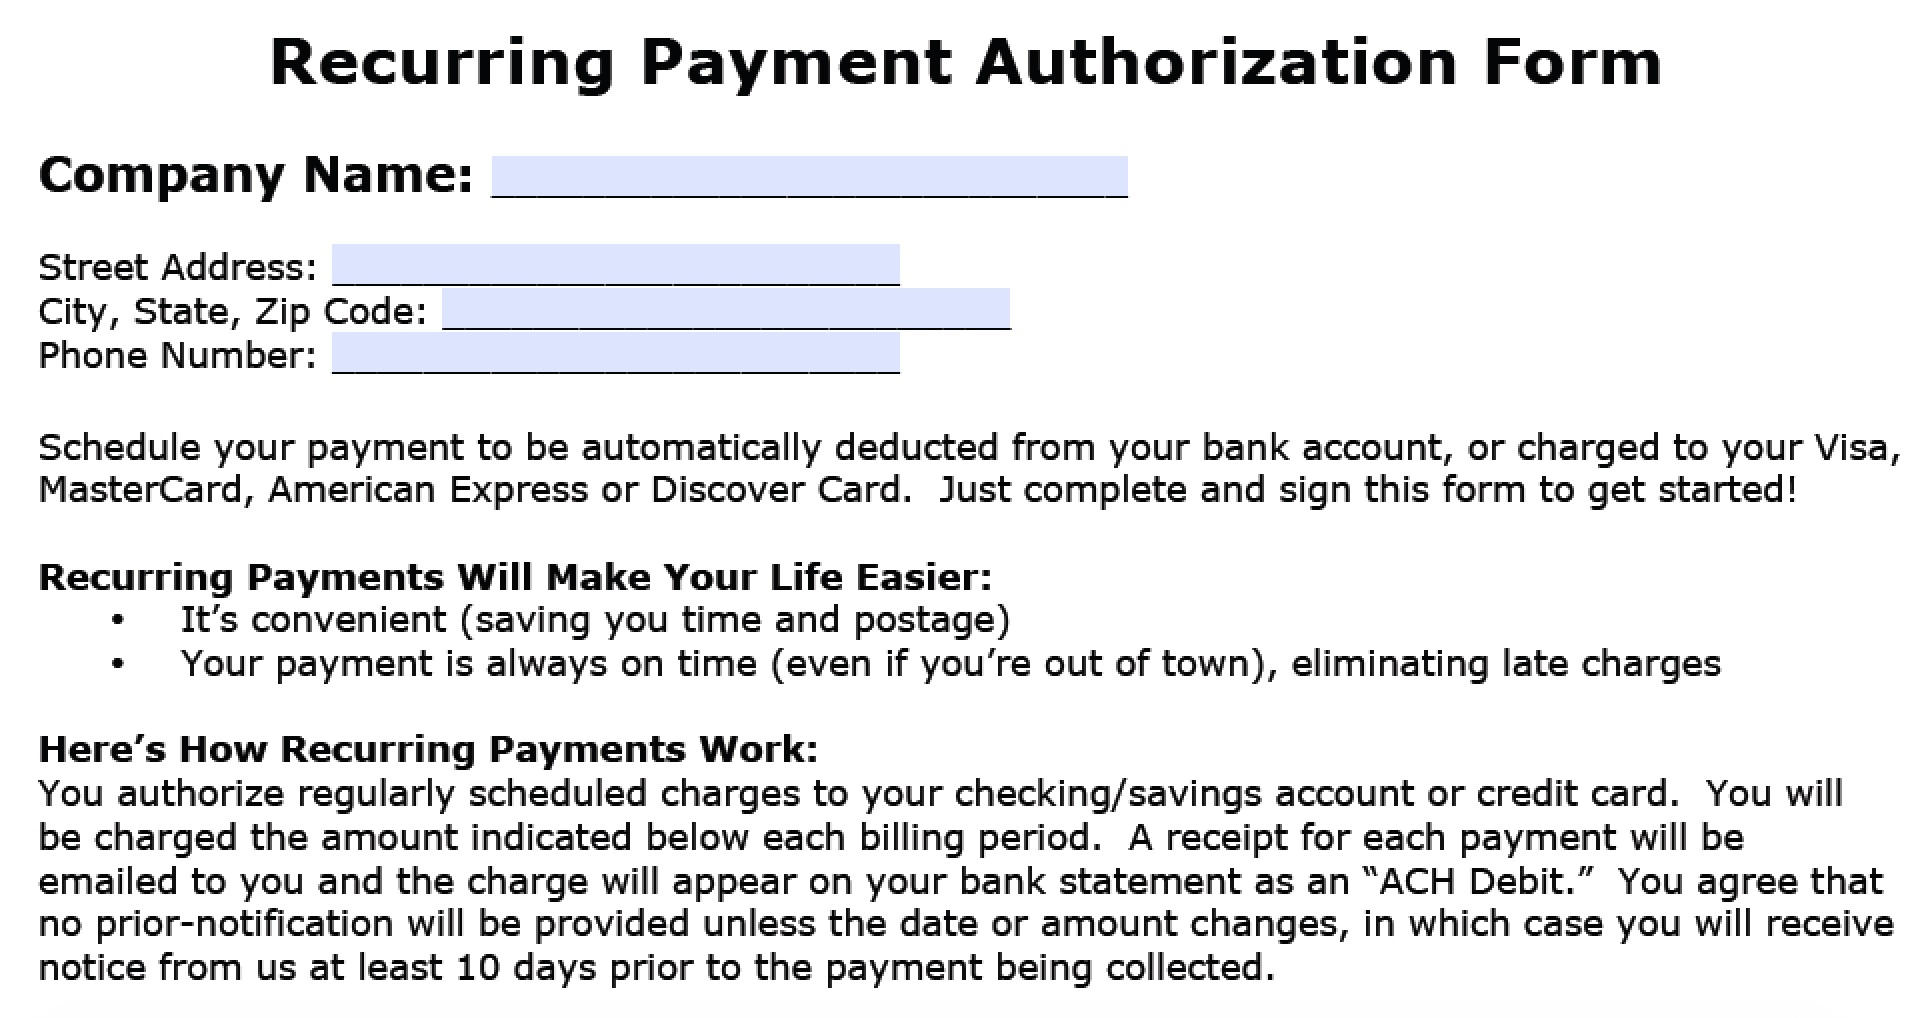 Recurring Payment Authorization Form Part 1